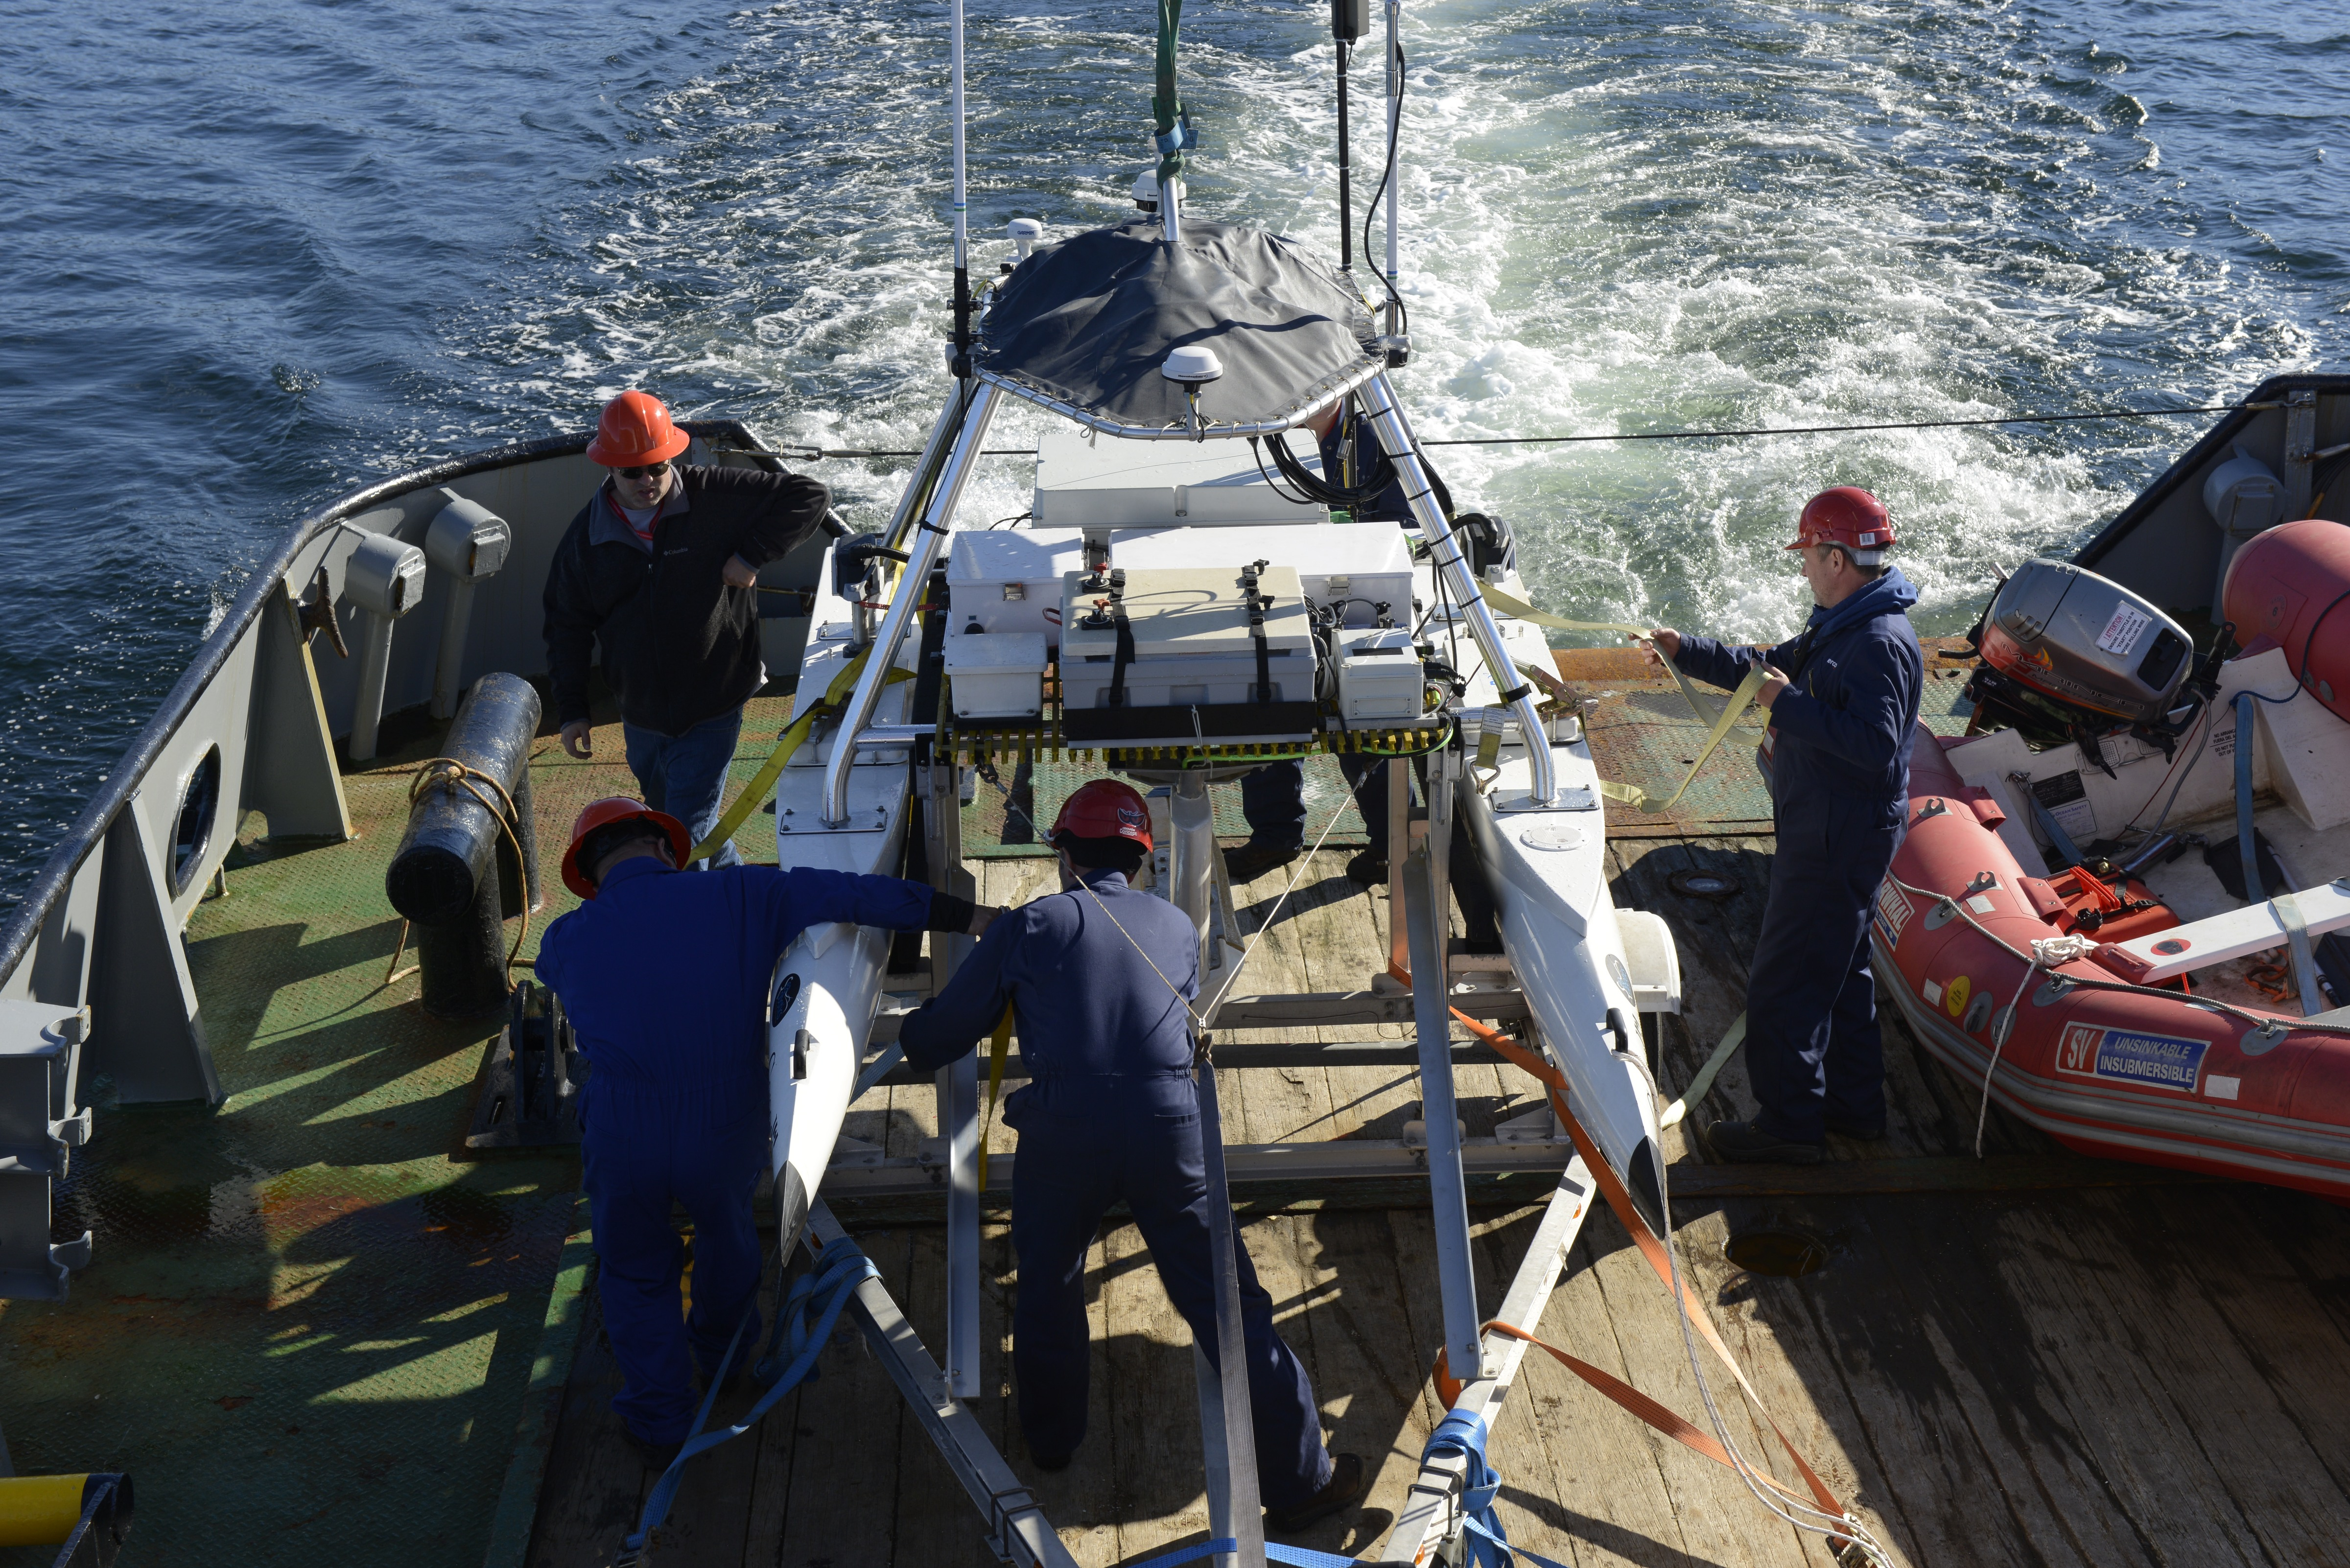 Defence Research and Development Canada technologists and ship crew secure their USV-2600 unmanned surface vehicle on the SD Kyle of Lochalsh ship after completing a mission in Belmacara Bay. Photo by Janice Lang, DRDC